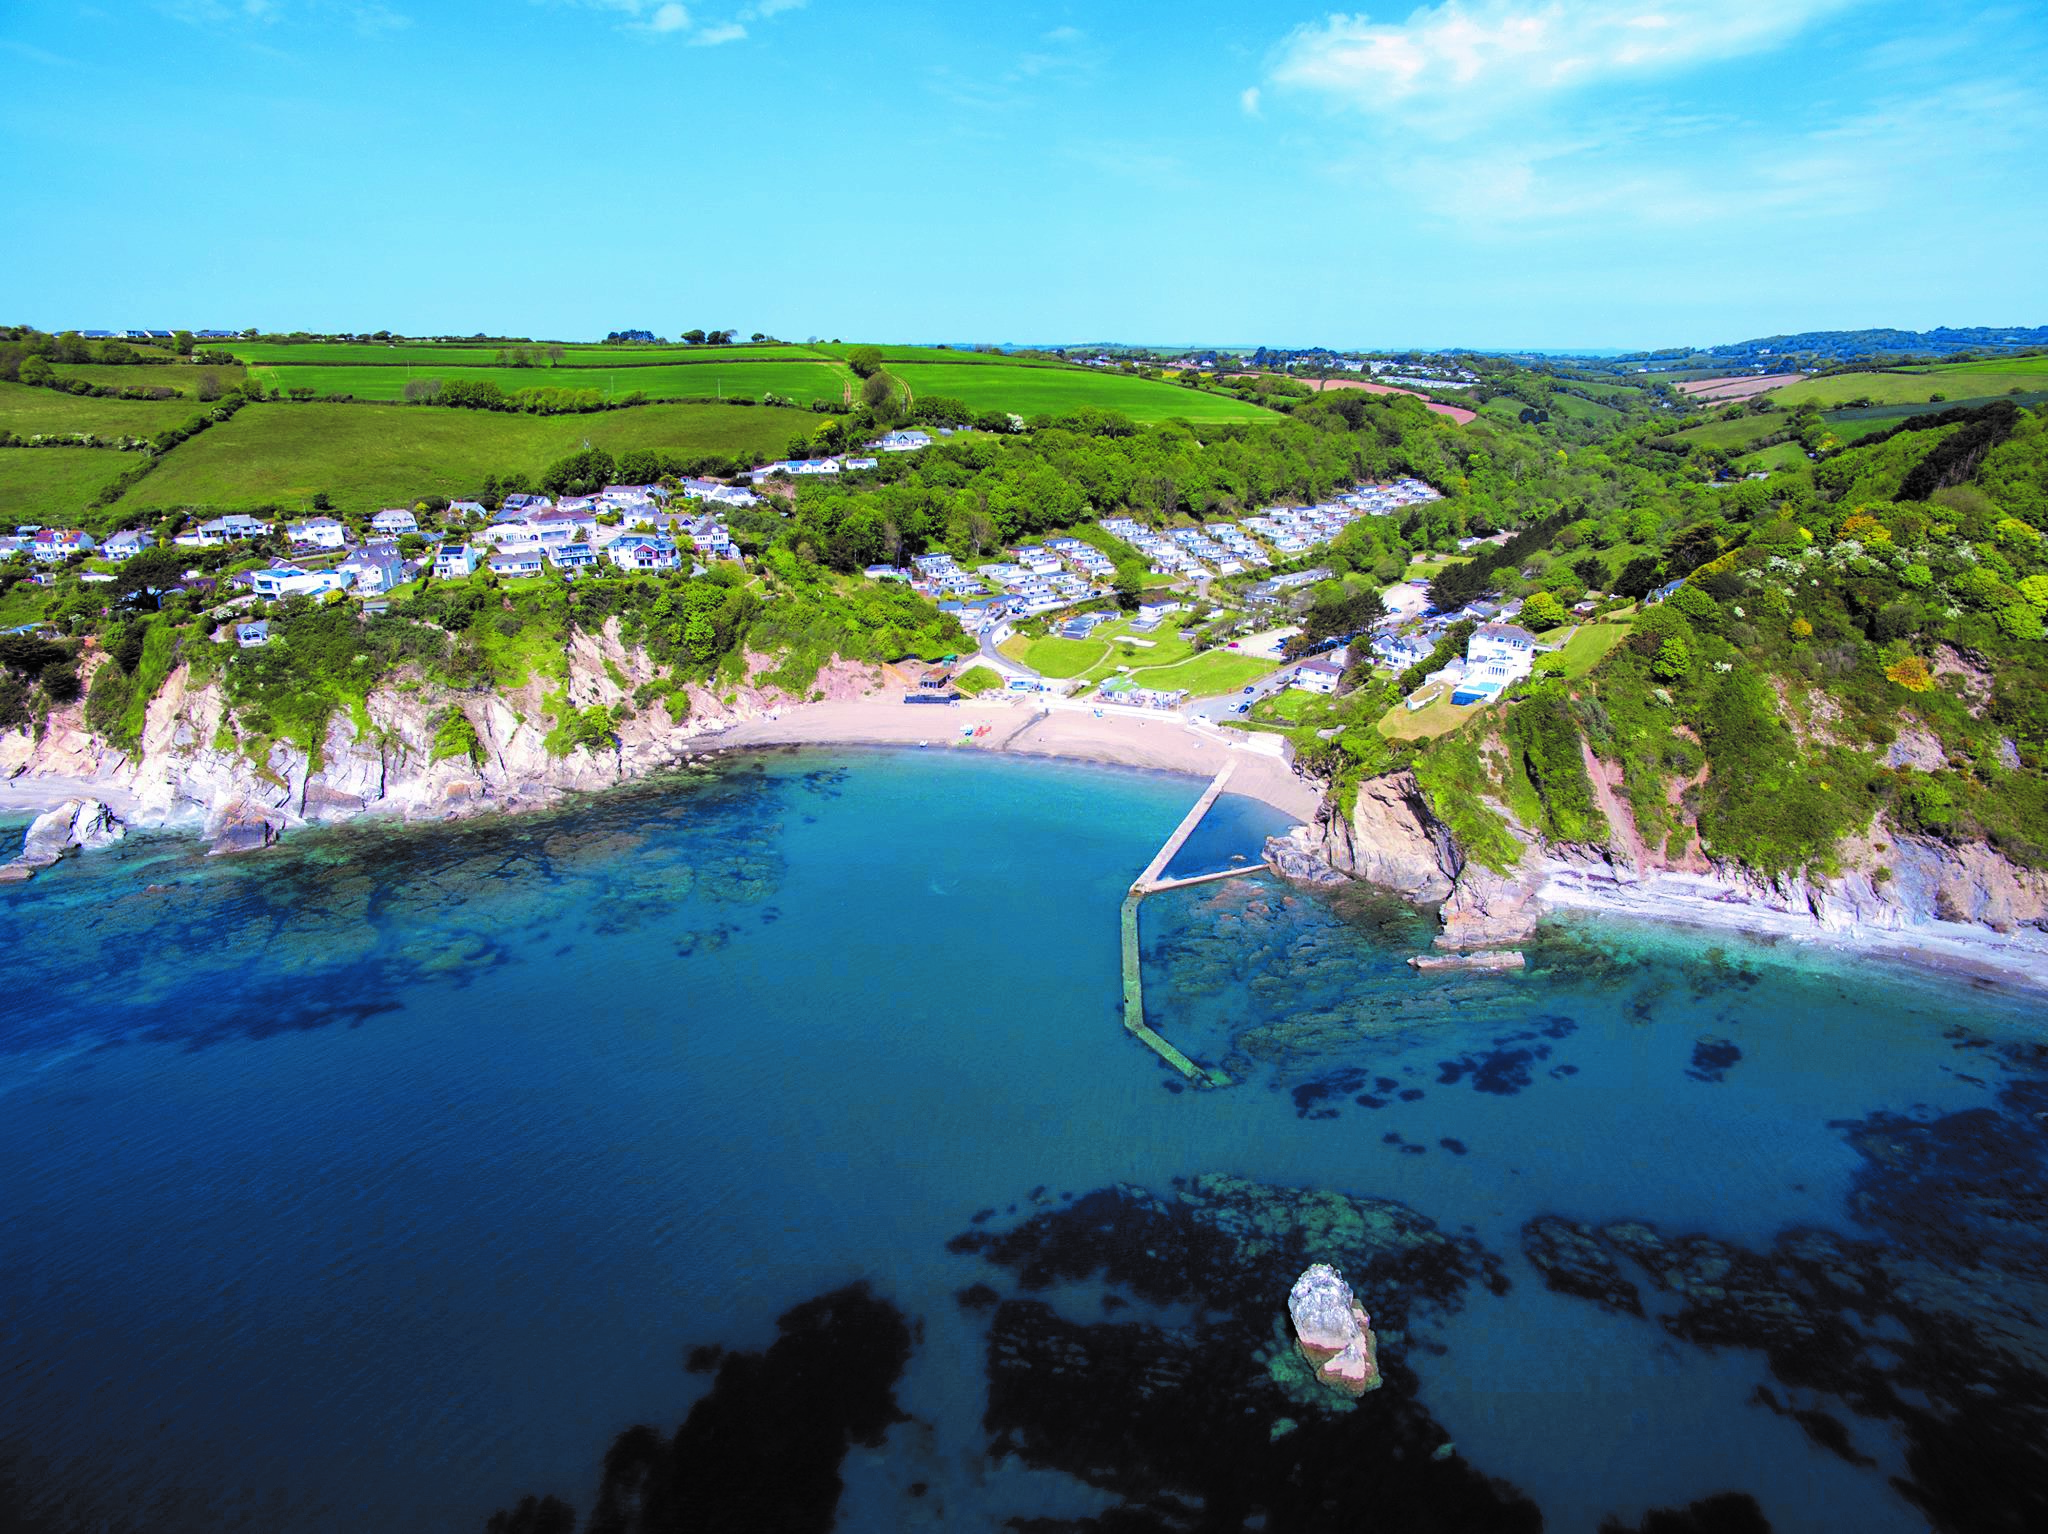 Millendreath Beach Resort near Looe, recently acquired by Valley Resorts